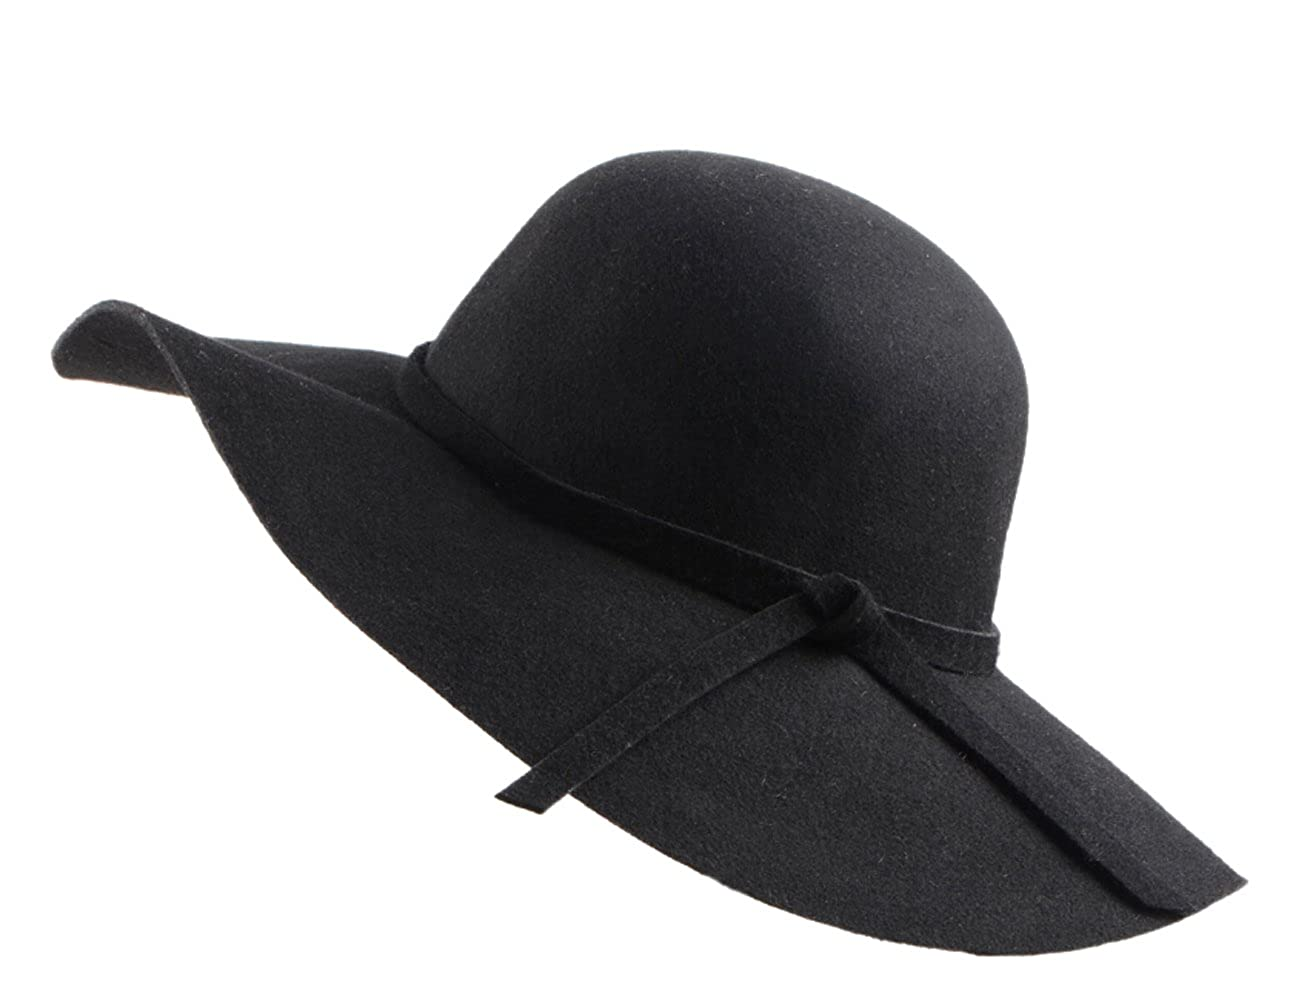 b62e34c16bbae4 Urban CoCo Women's Foldable Wide Brim Felt Bowler Fedora Floopy Wool Hat  (Black) at Amazon Women's Clothing store: